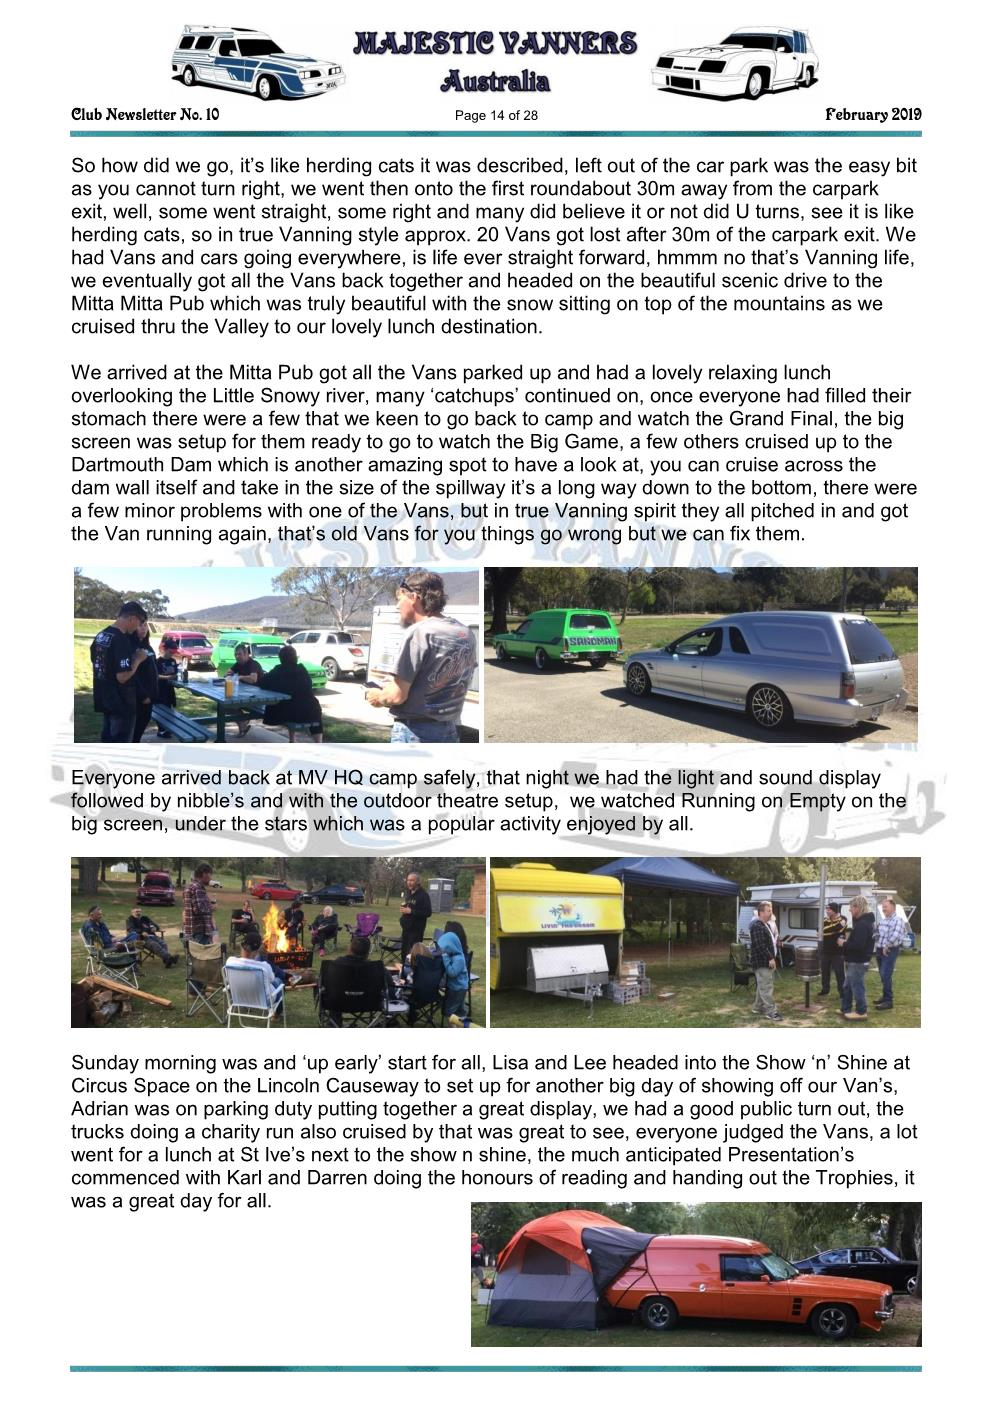 MAJESTIC VANNERS Newsletter Issue No: 10 February 2019 Mv_new24